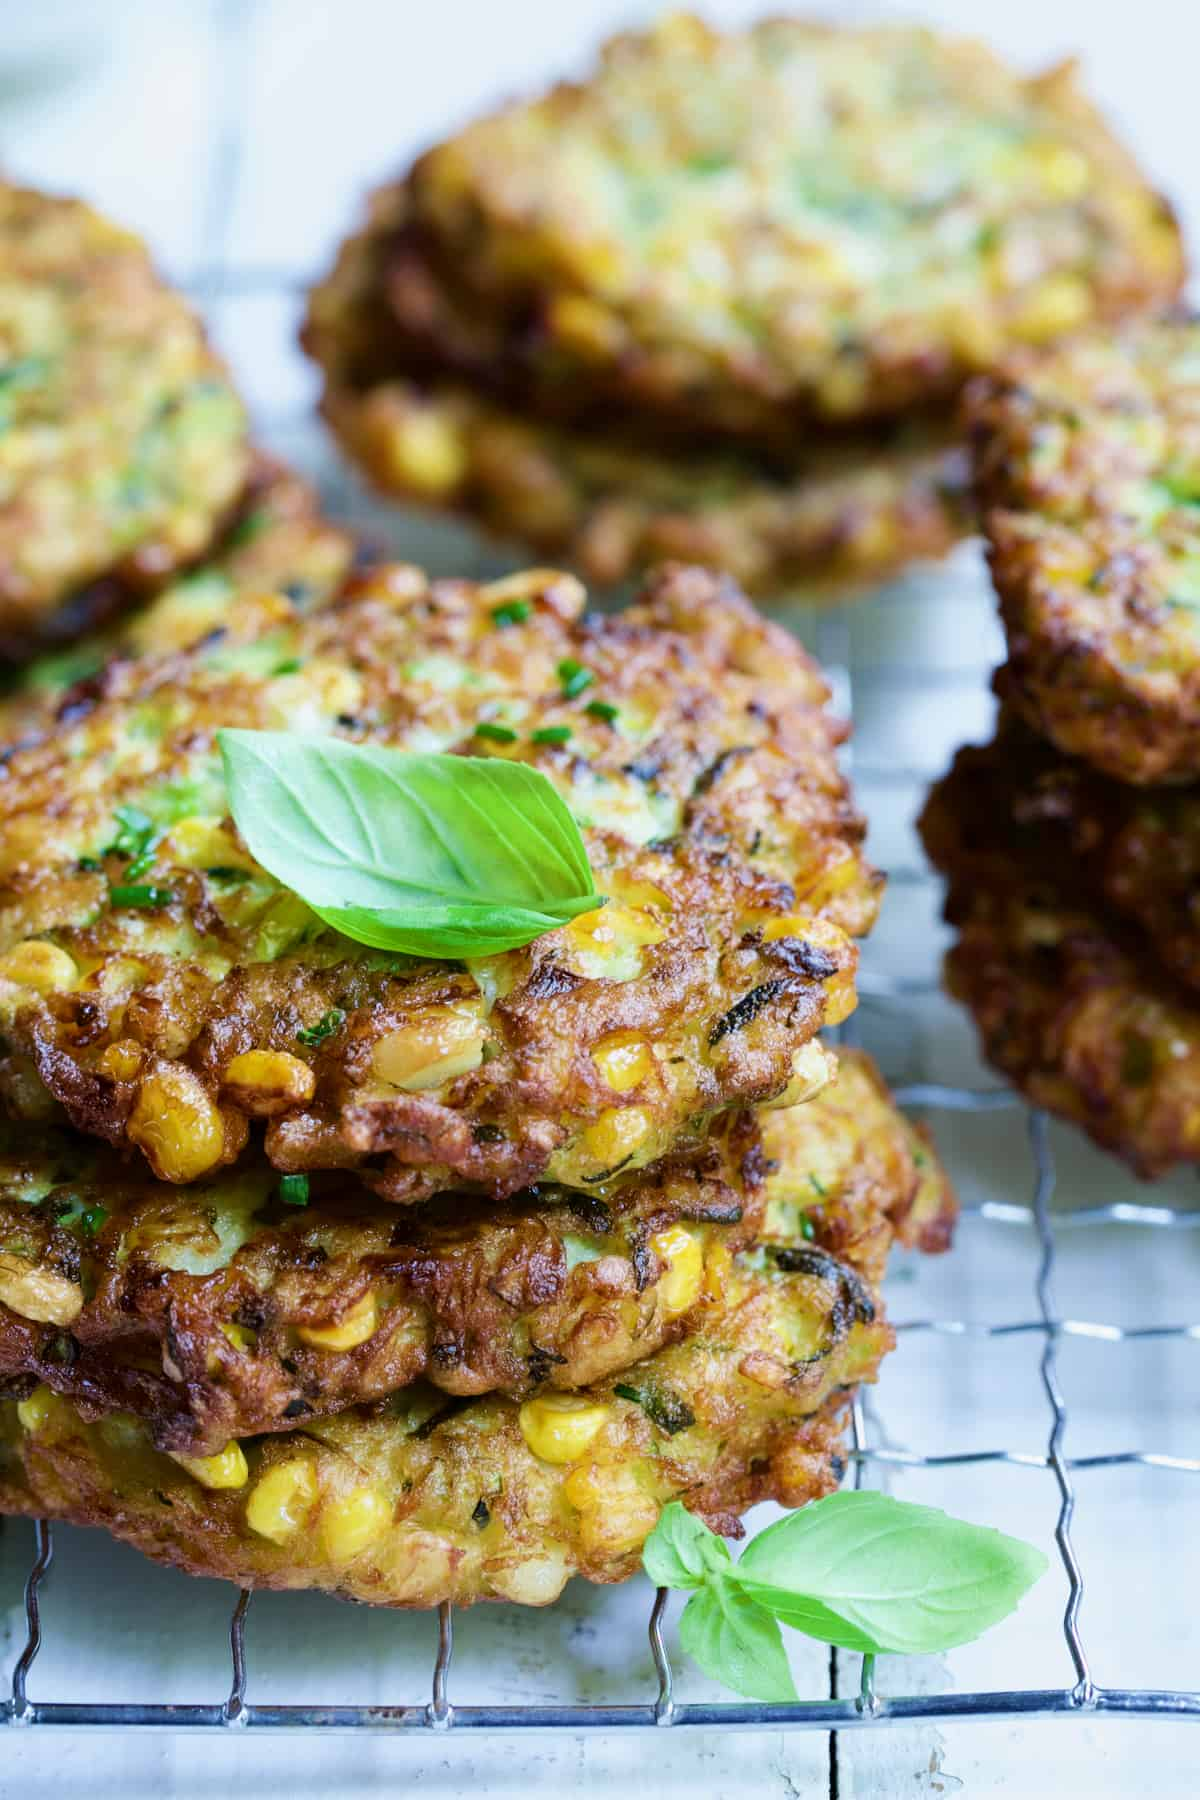 Stack of three Zucchini Corn Cakes with more in the background.